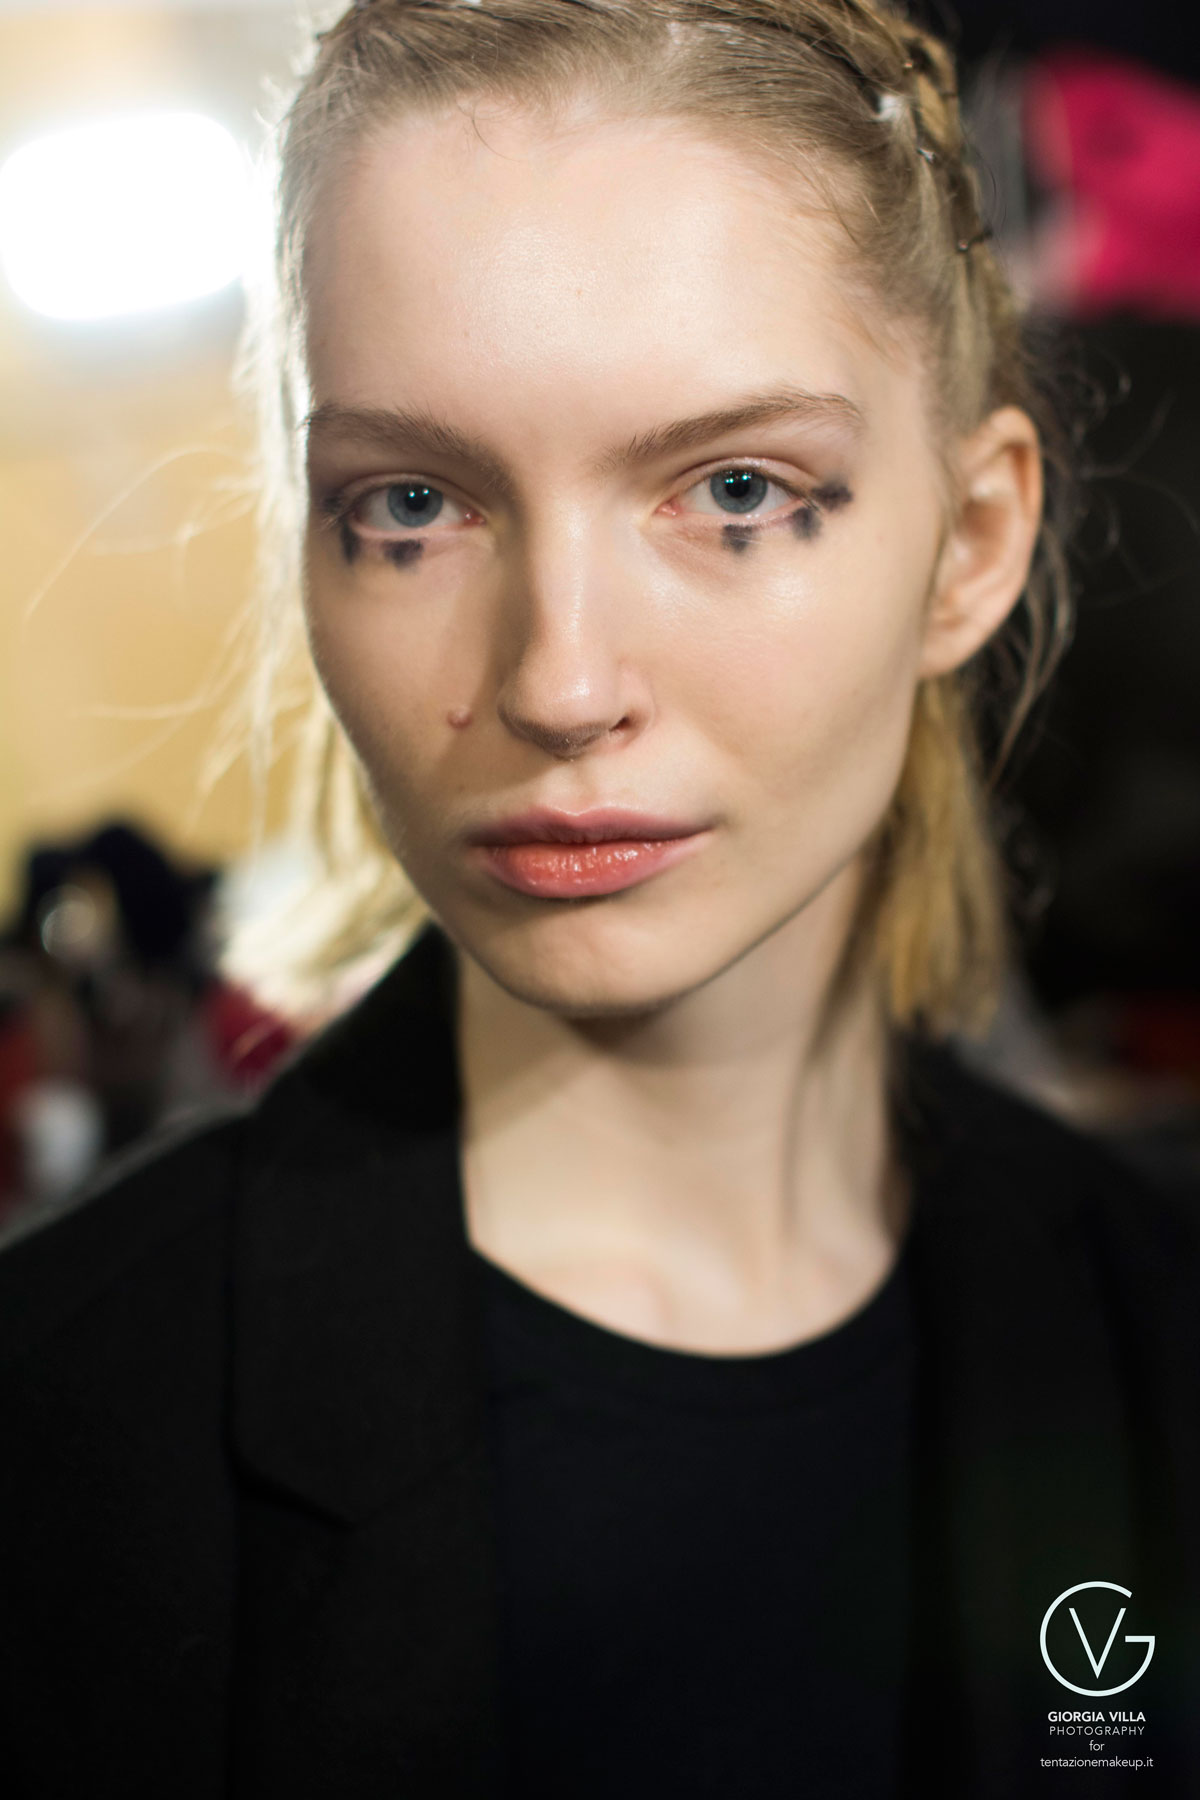 Milano fashion week: tendenze make-up